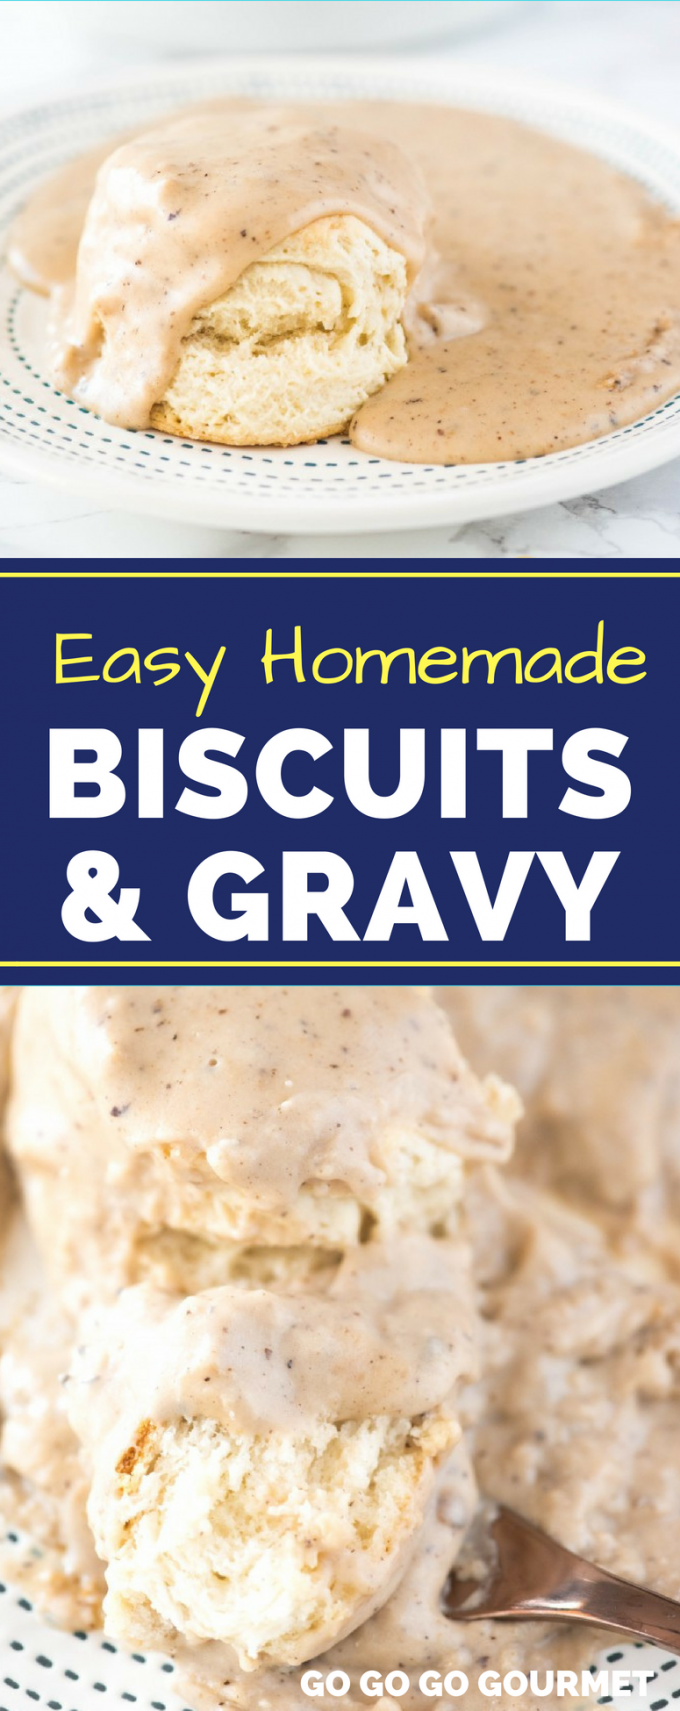 Skip the breakfast casserole and make this easy Biscuits and Gravy recipe for your next brunch! Rivaling the Pioneer Woman recipe with buttery biscuits and flavorful gravy, this homemade meal is sure to please! #homemadebiscuitsandgravy #easybrunchrecipes #buscuitsandgravyrecipe #gogogogourmet